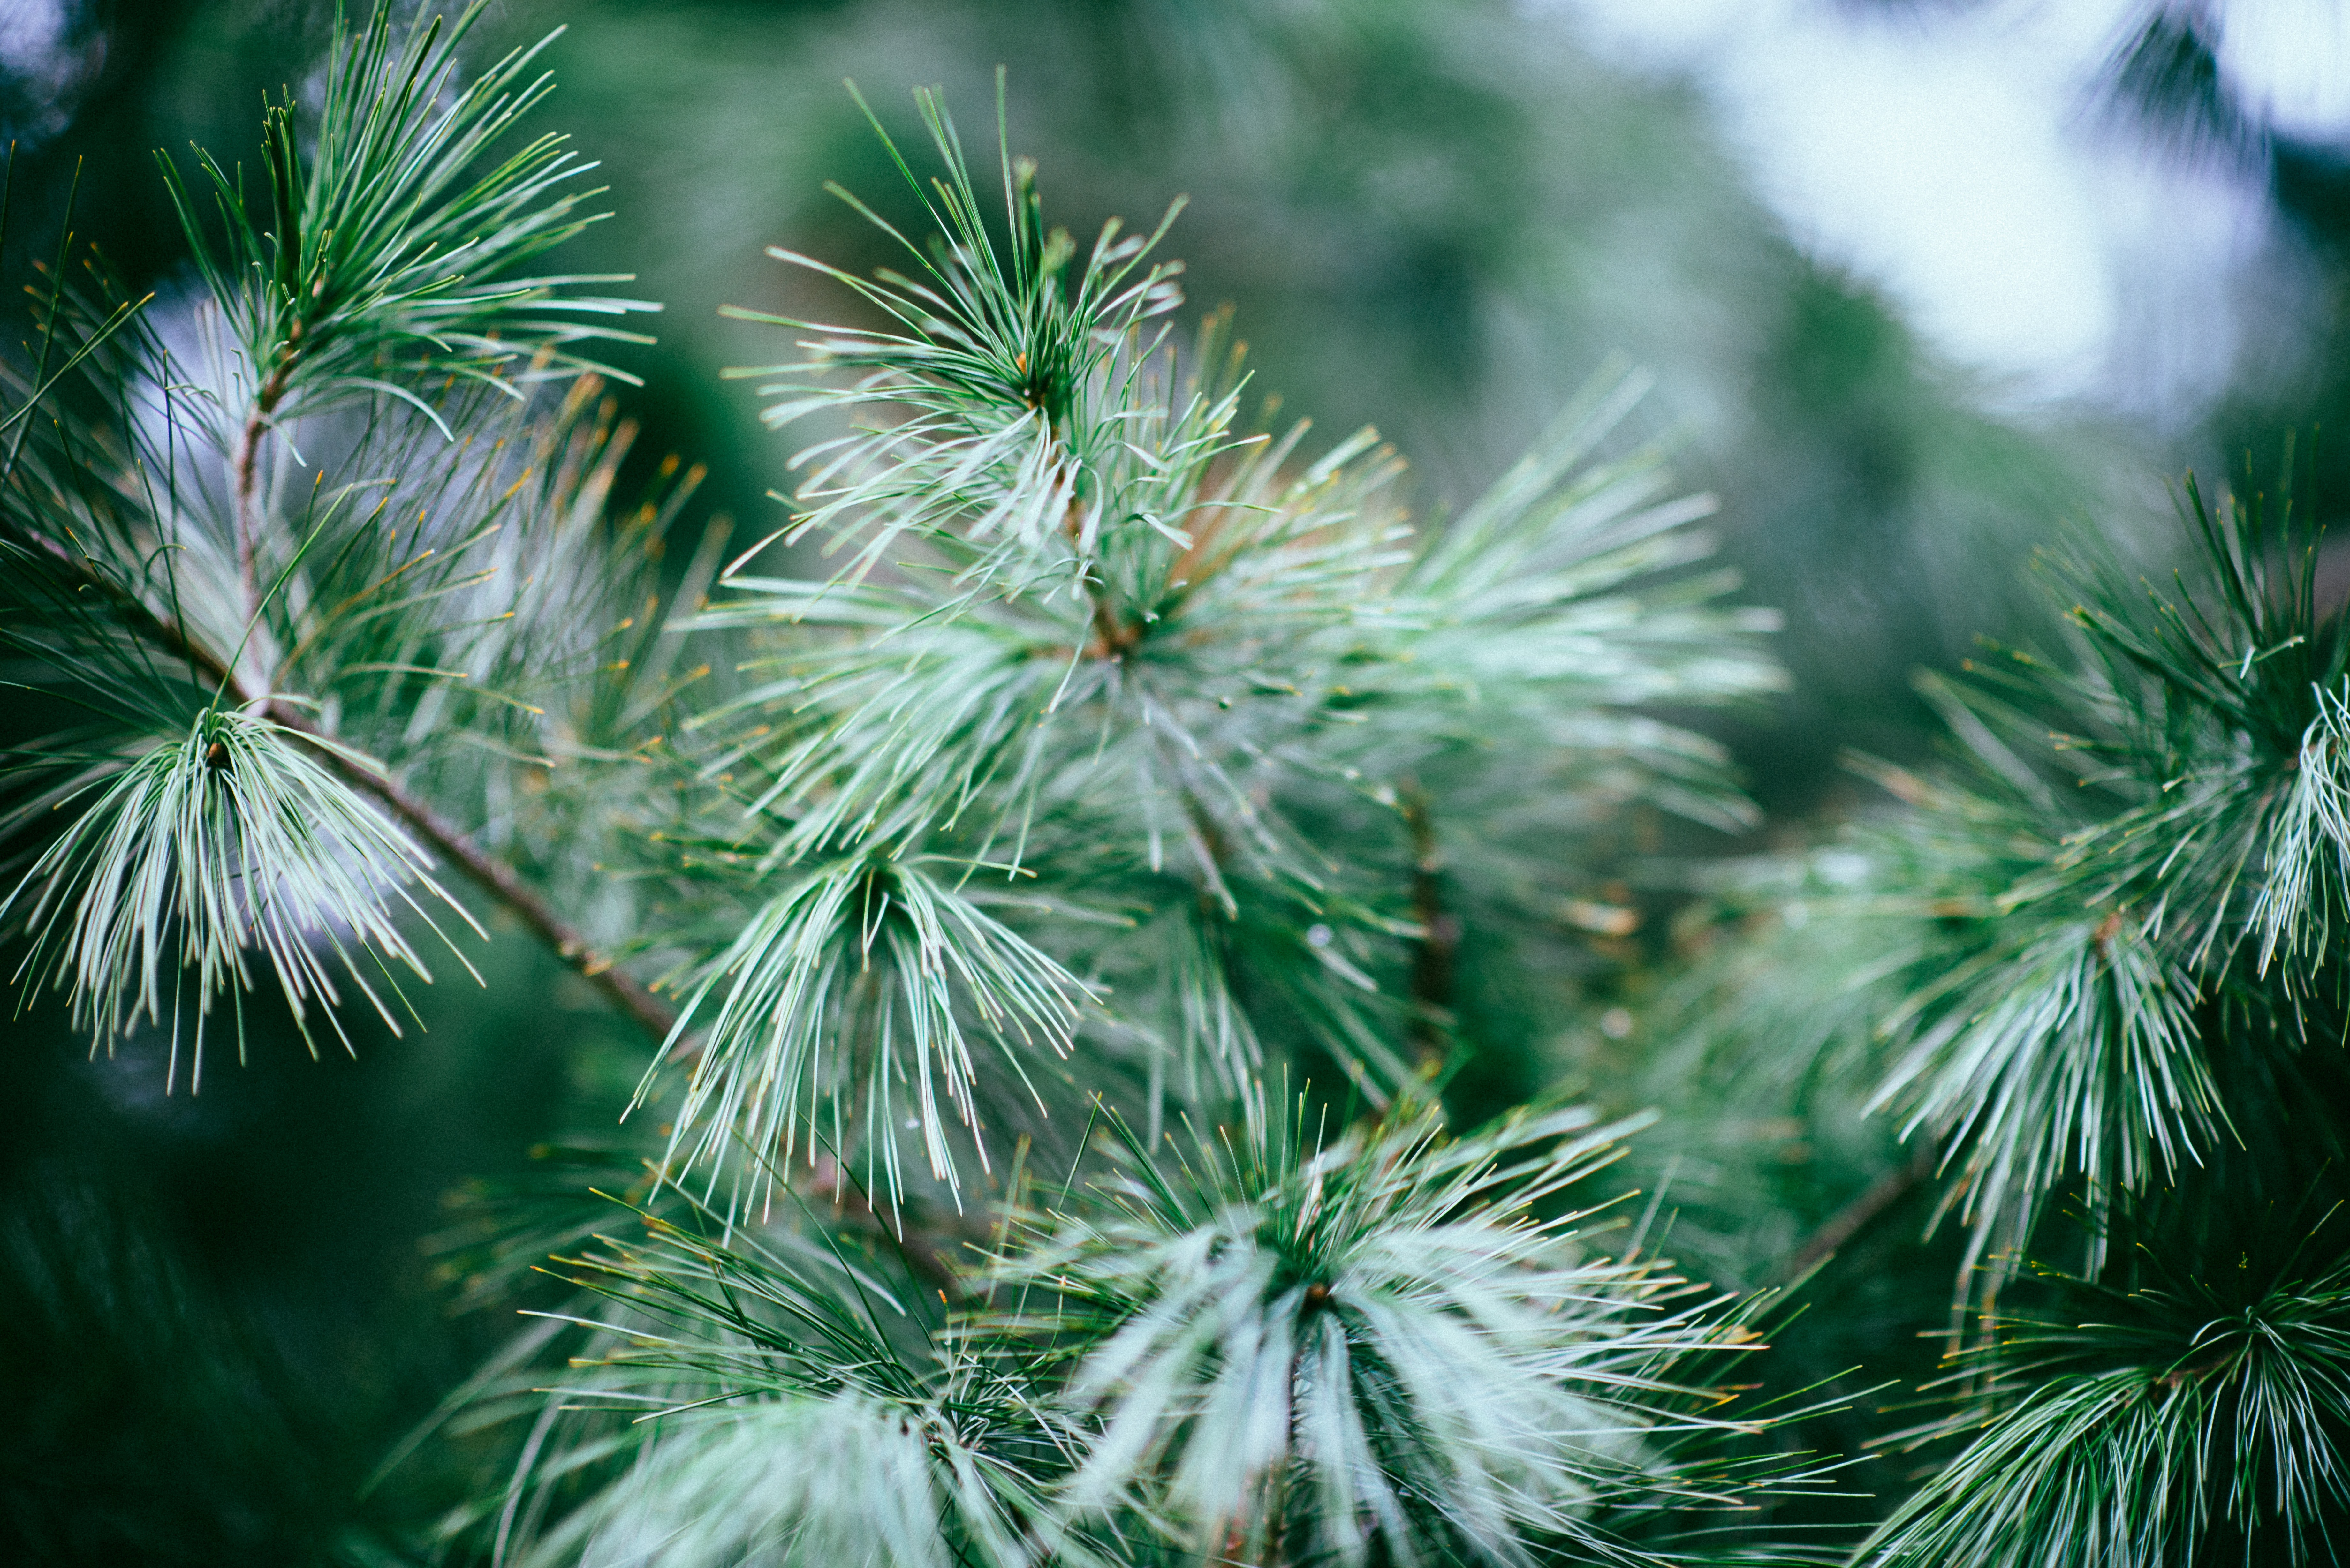 A close-up of thin needles on a conifer branch